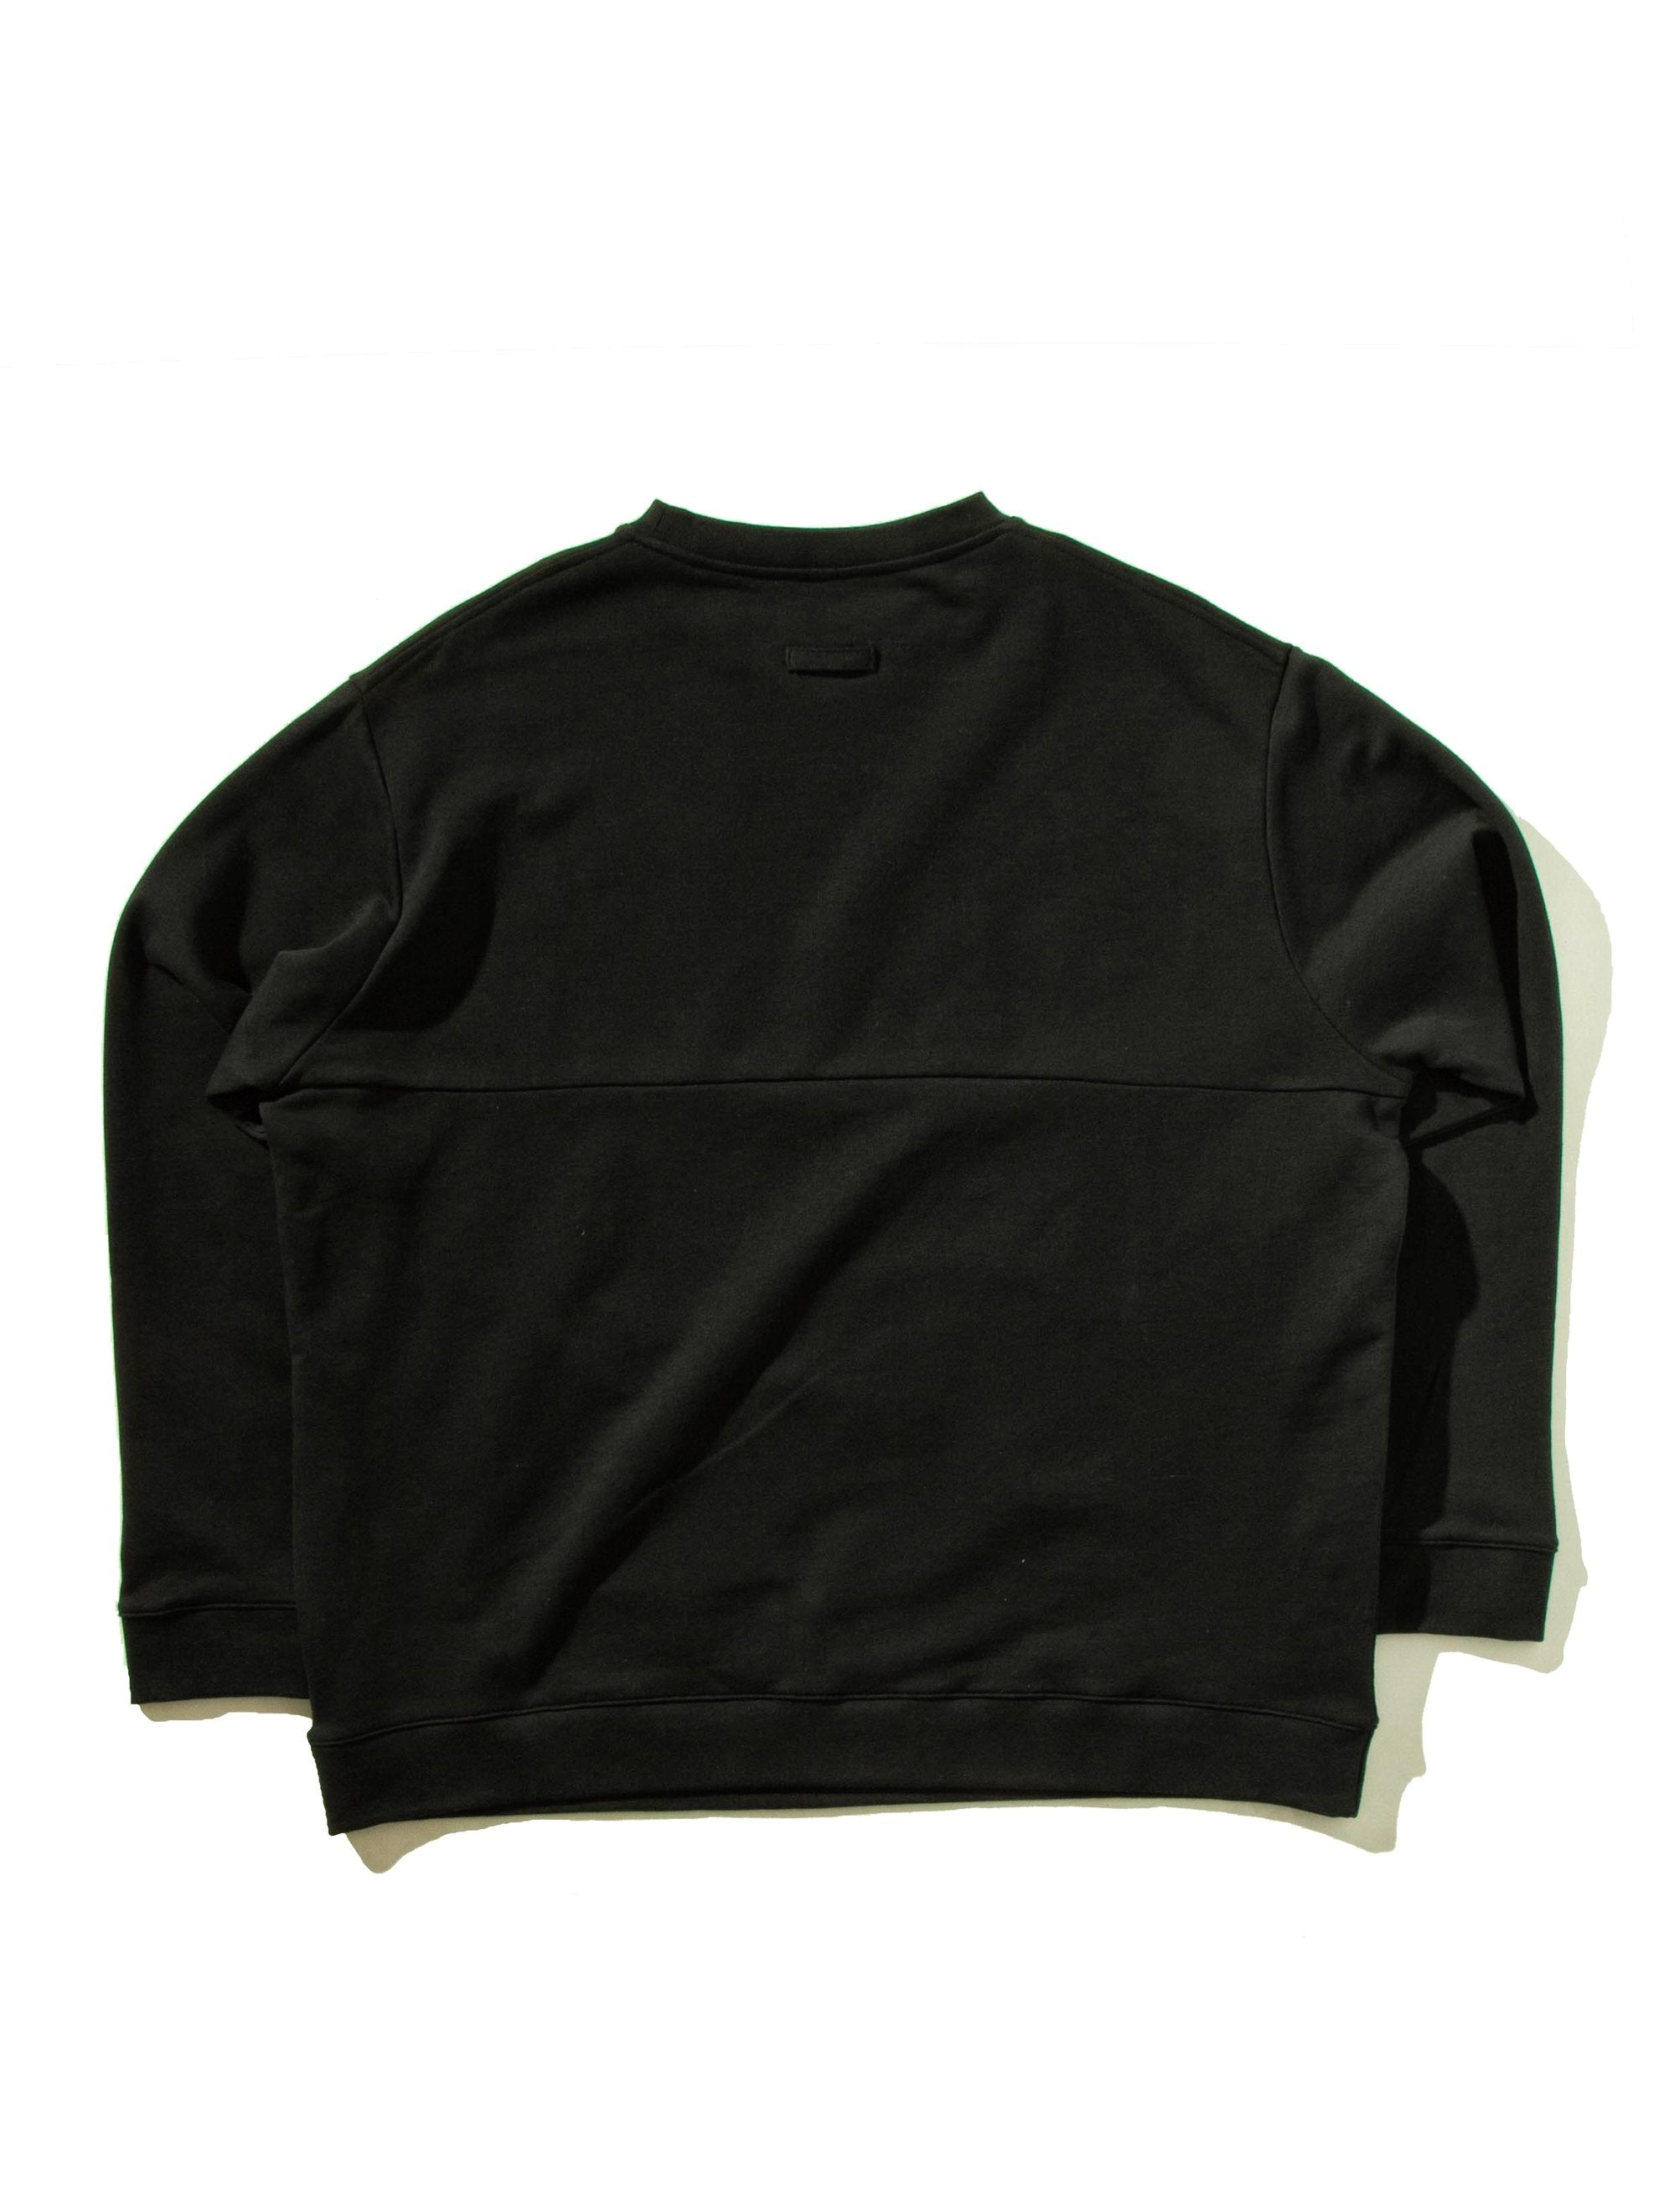 Black Oversized Sweatshirt (with Print) 9